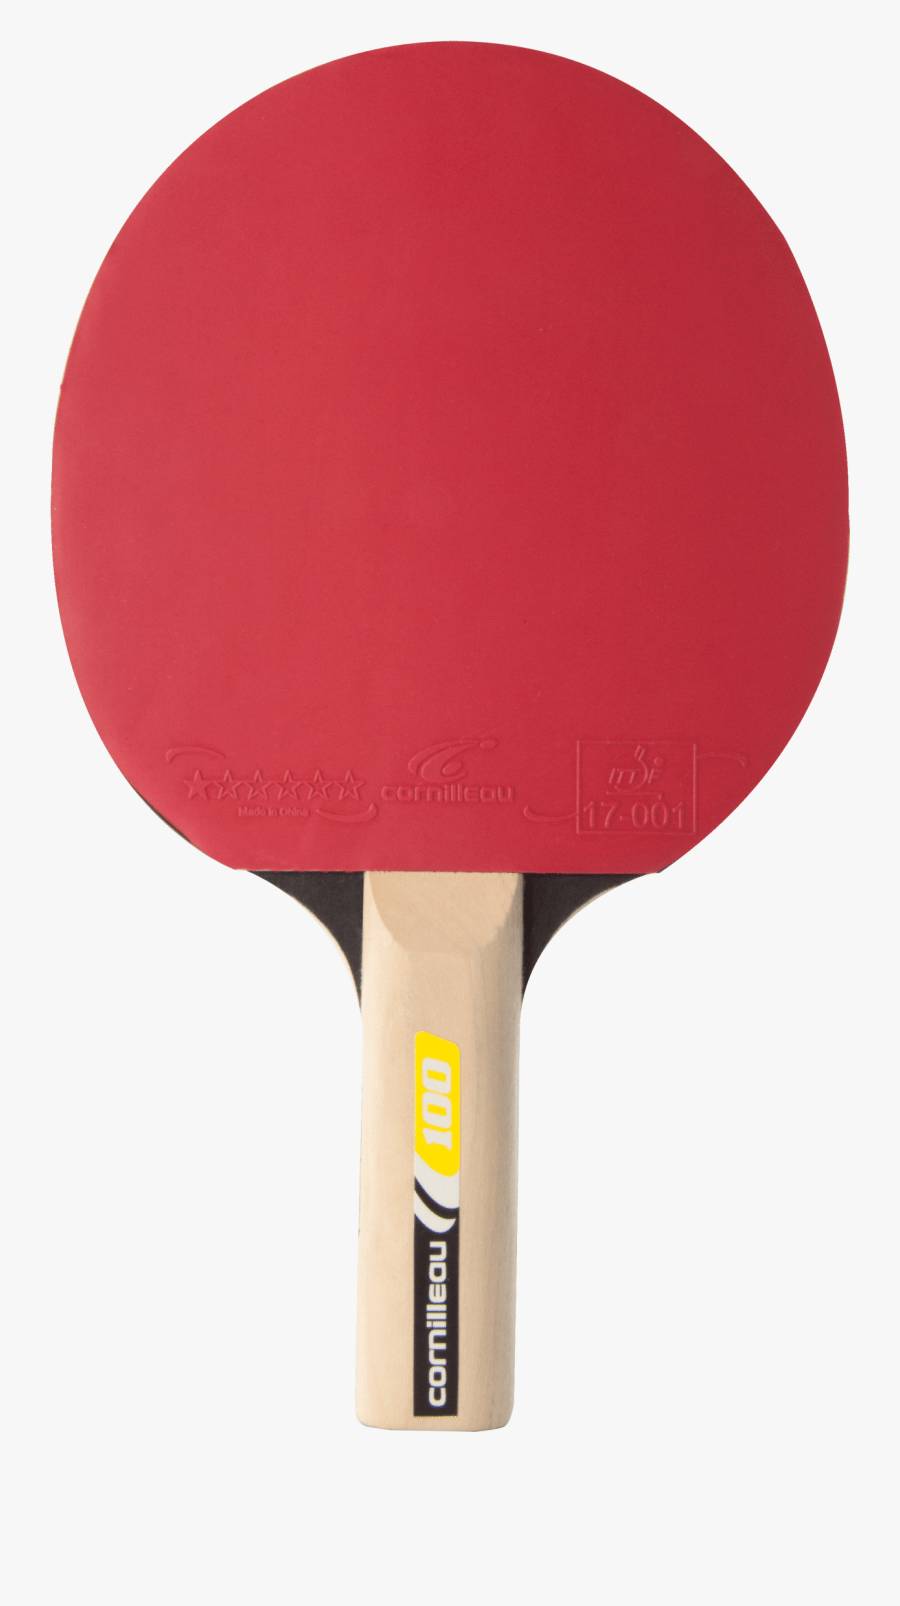 Table Tennis Png : table, tennis, Table, Tennis, Stiga, Carbon, Raquette, Transparent, Clipart, ClipartKey